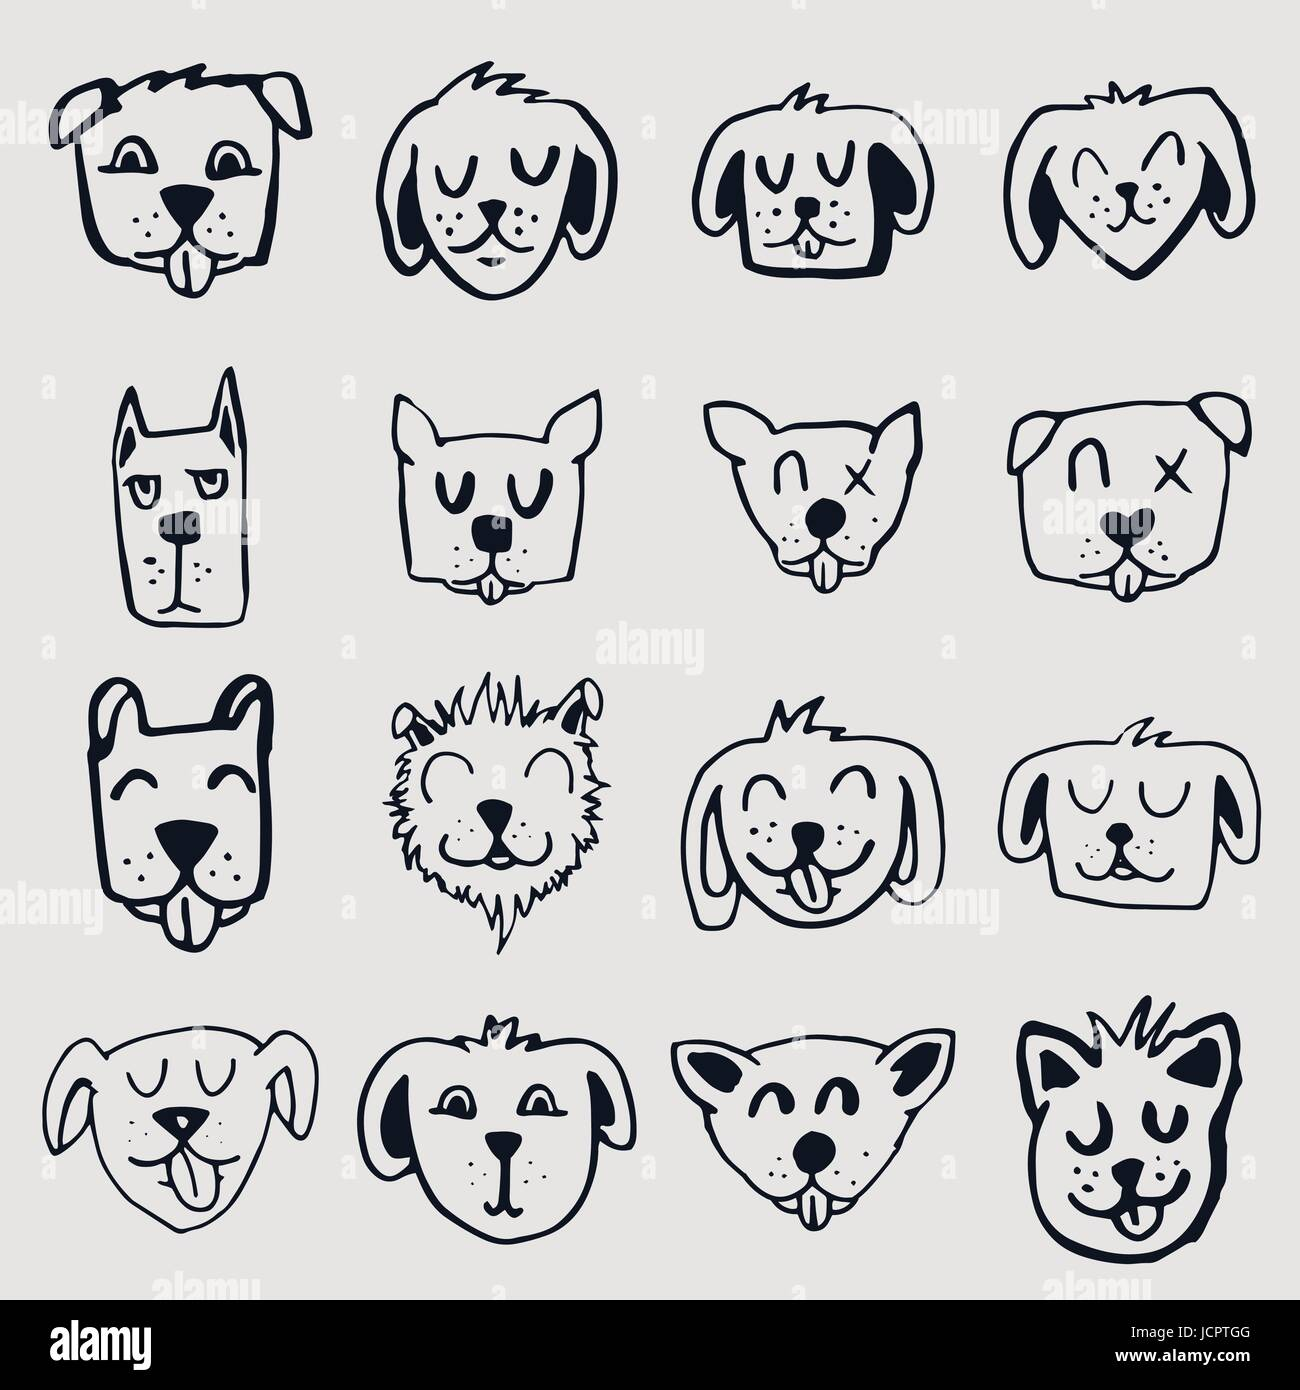 Vector icon set of dogs and cats - Stock Vector